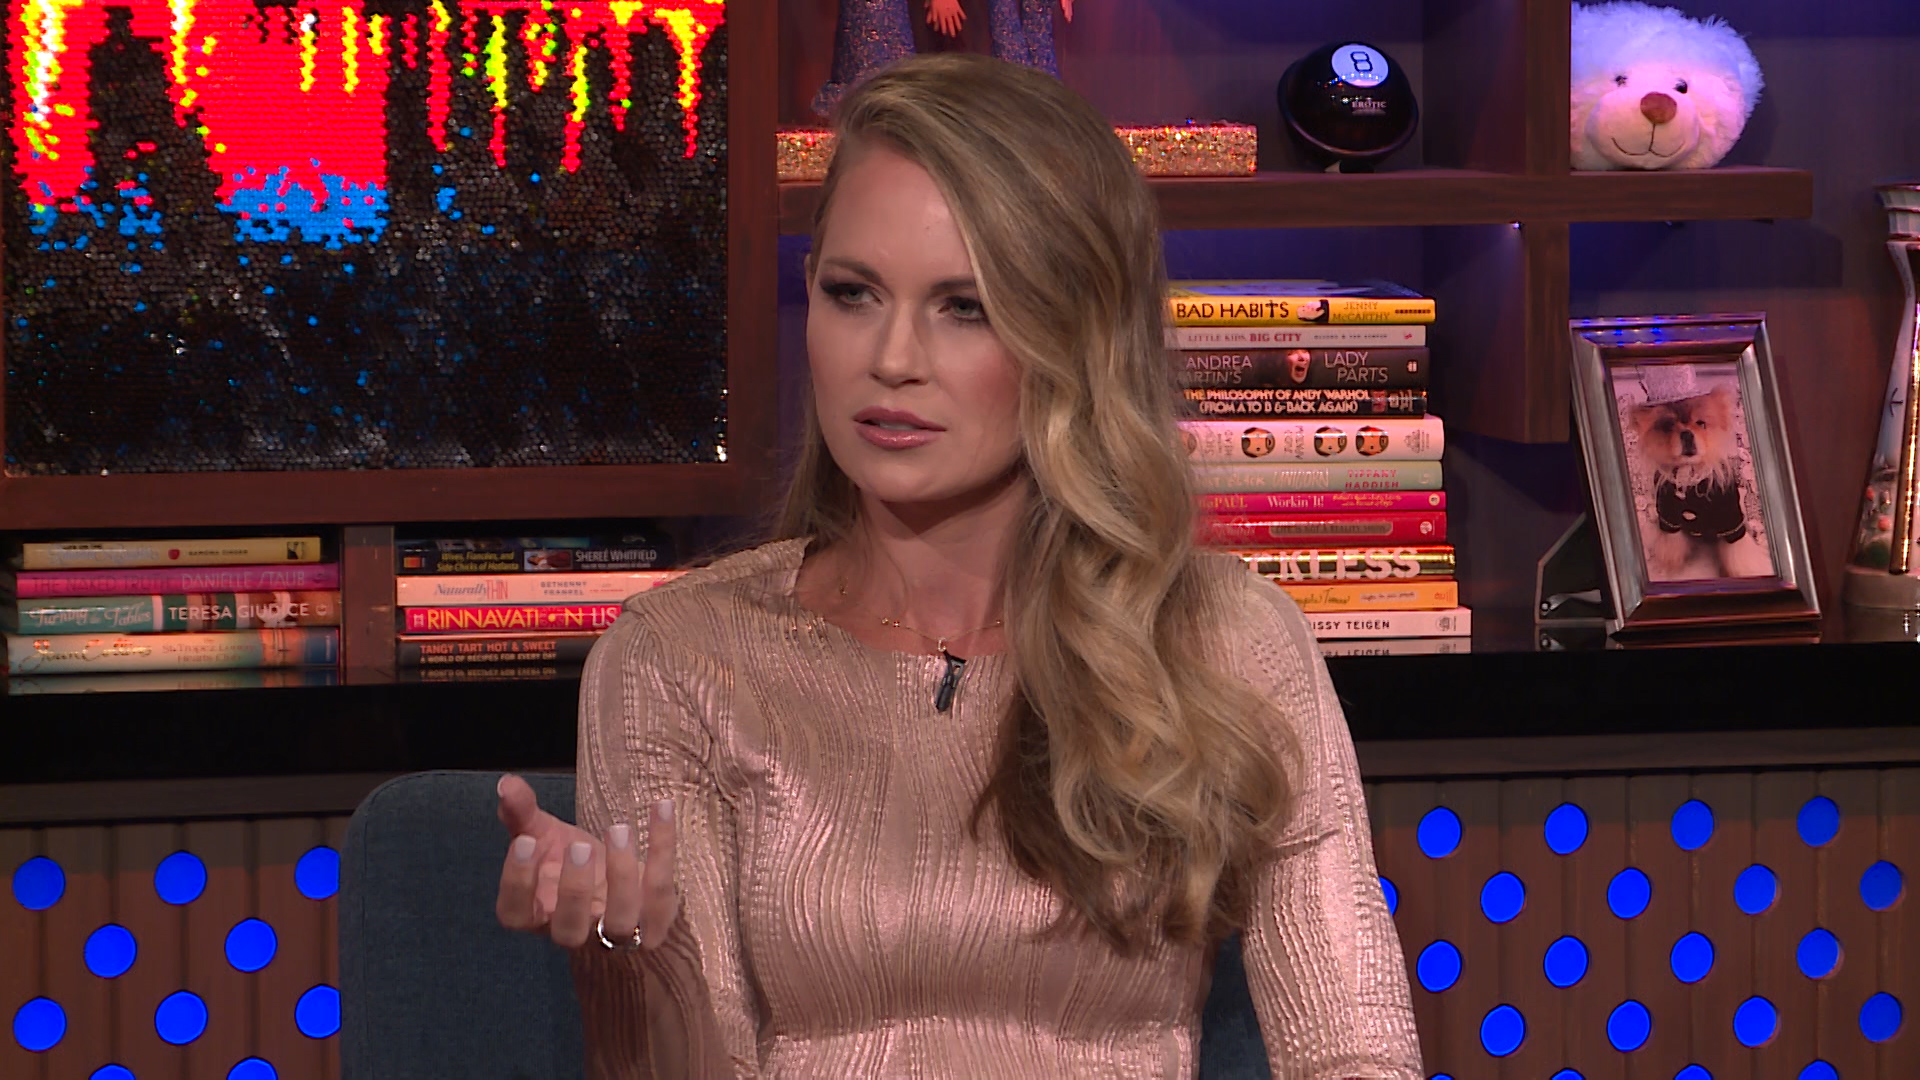 Did Cameran Eubanks Want Kathryn Dennis at her Baby Shower?